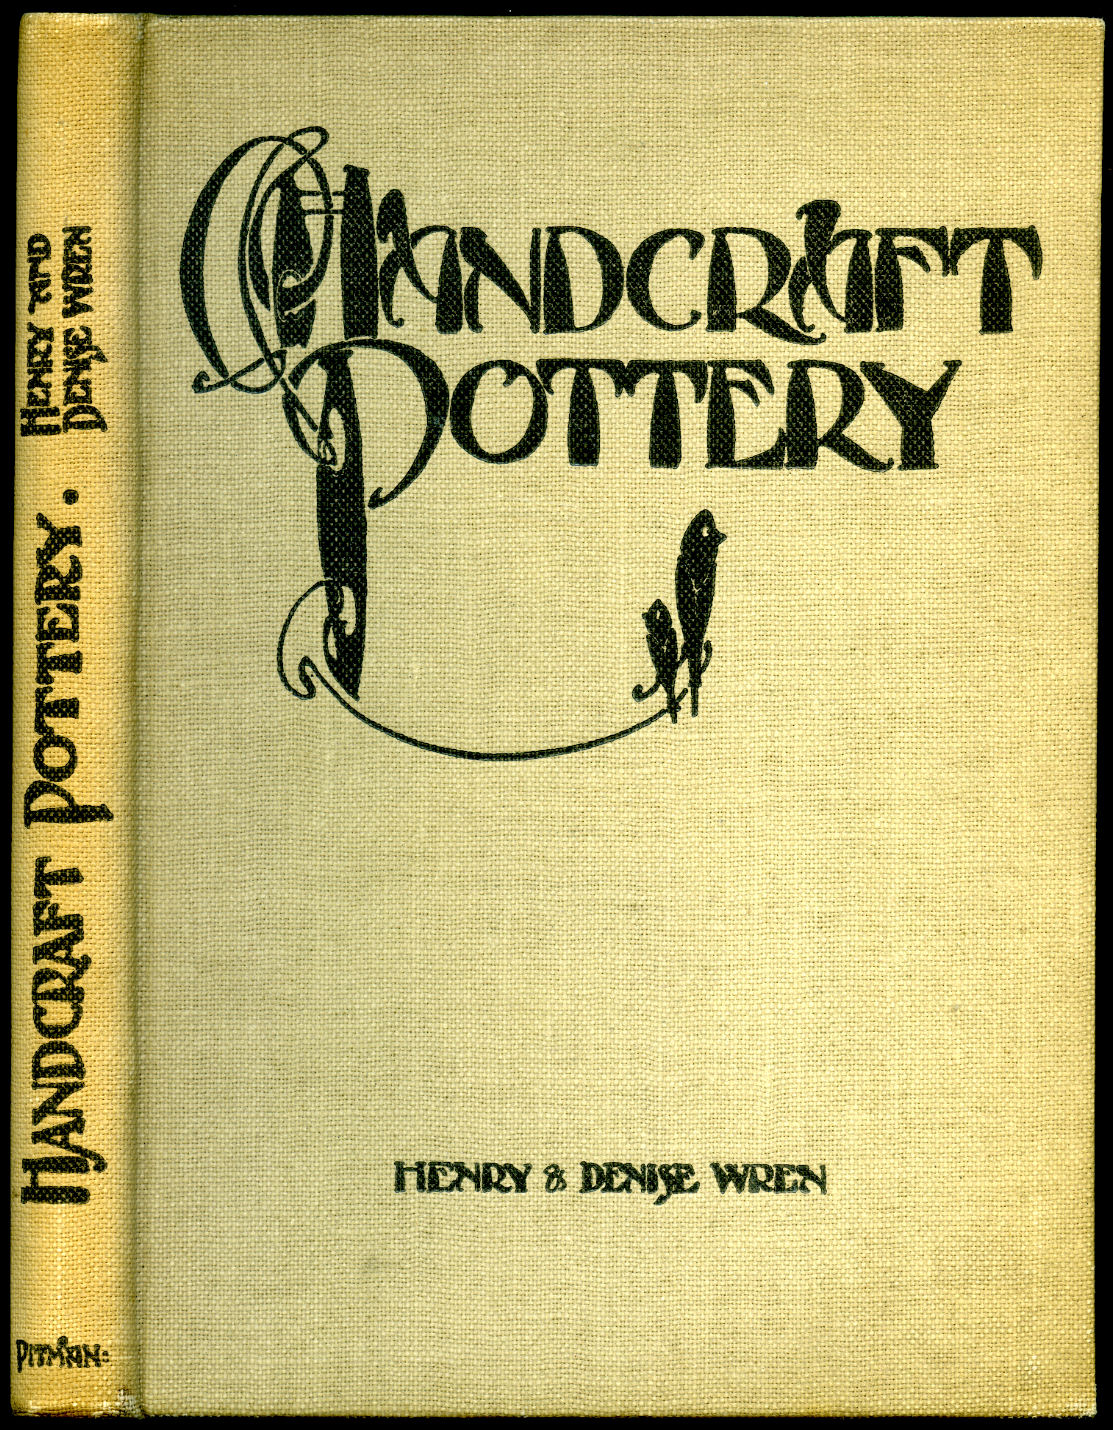 WREN, HENRY (DIED 1947) AND DENISE WREN (1891-1979) [FOREWORD BY FRANK BRANGWYN] - Handcraft Pottery for Workshop and School.